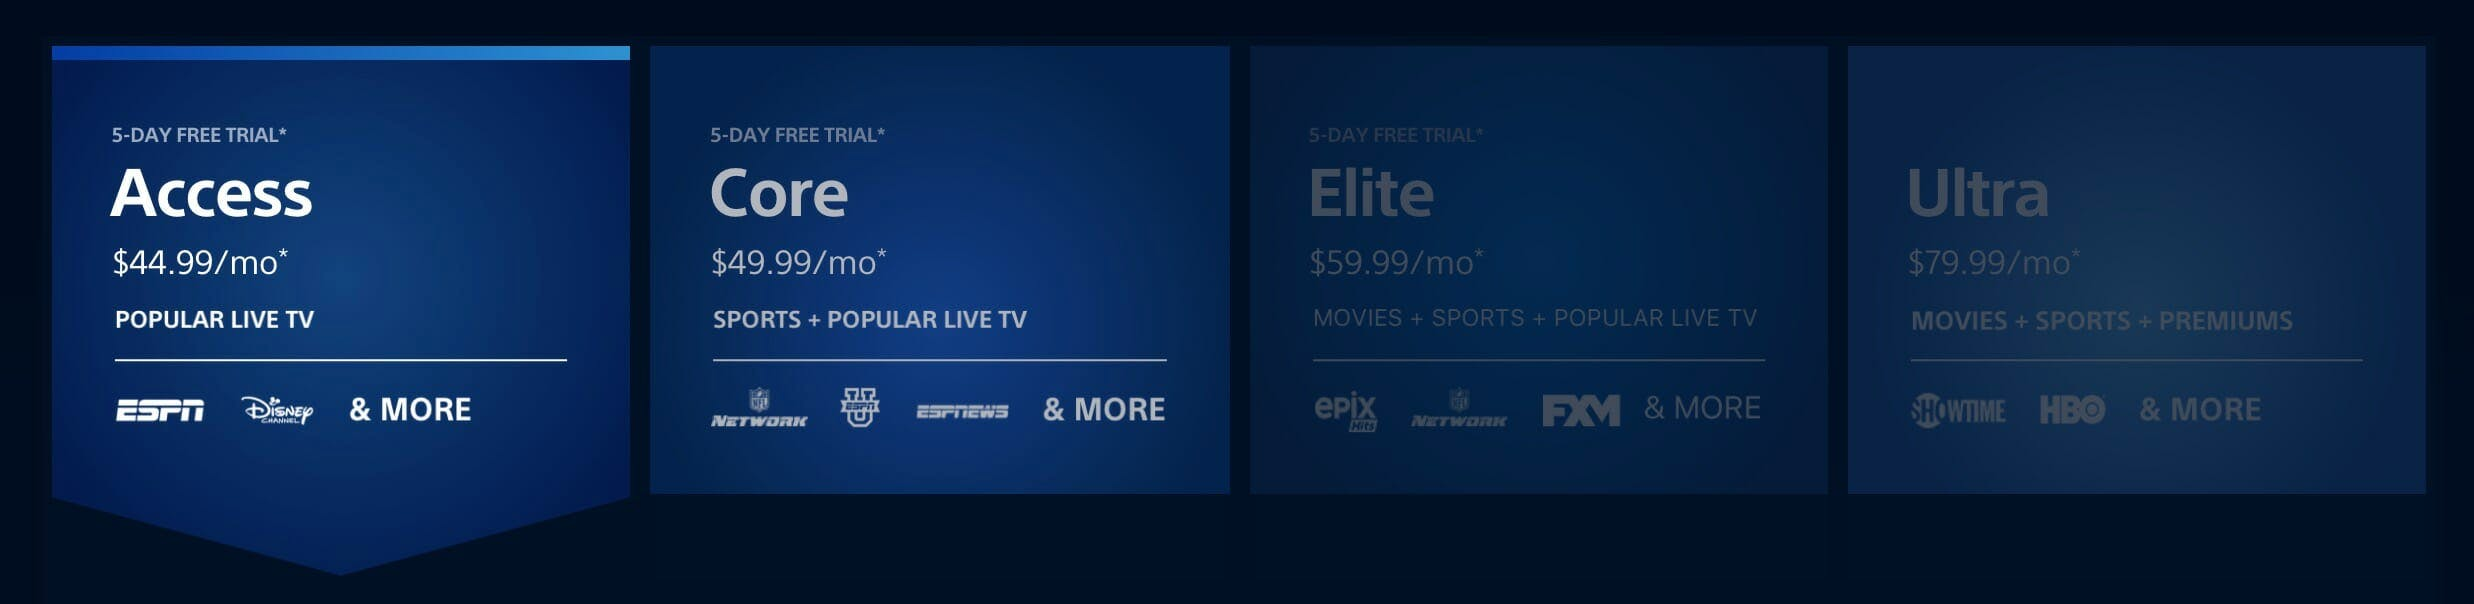 PS Vue packages cost